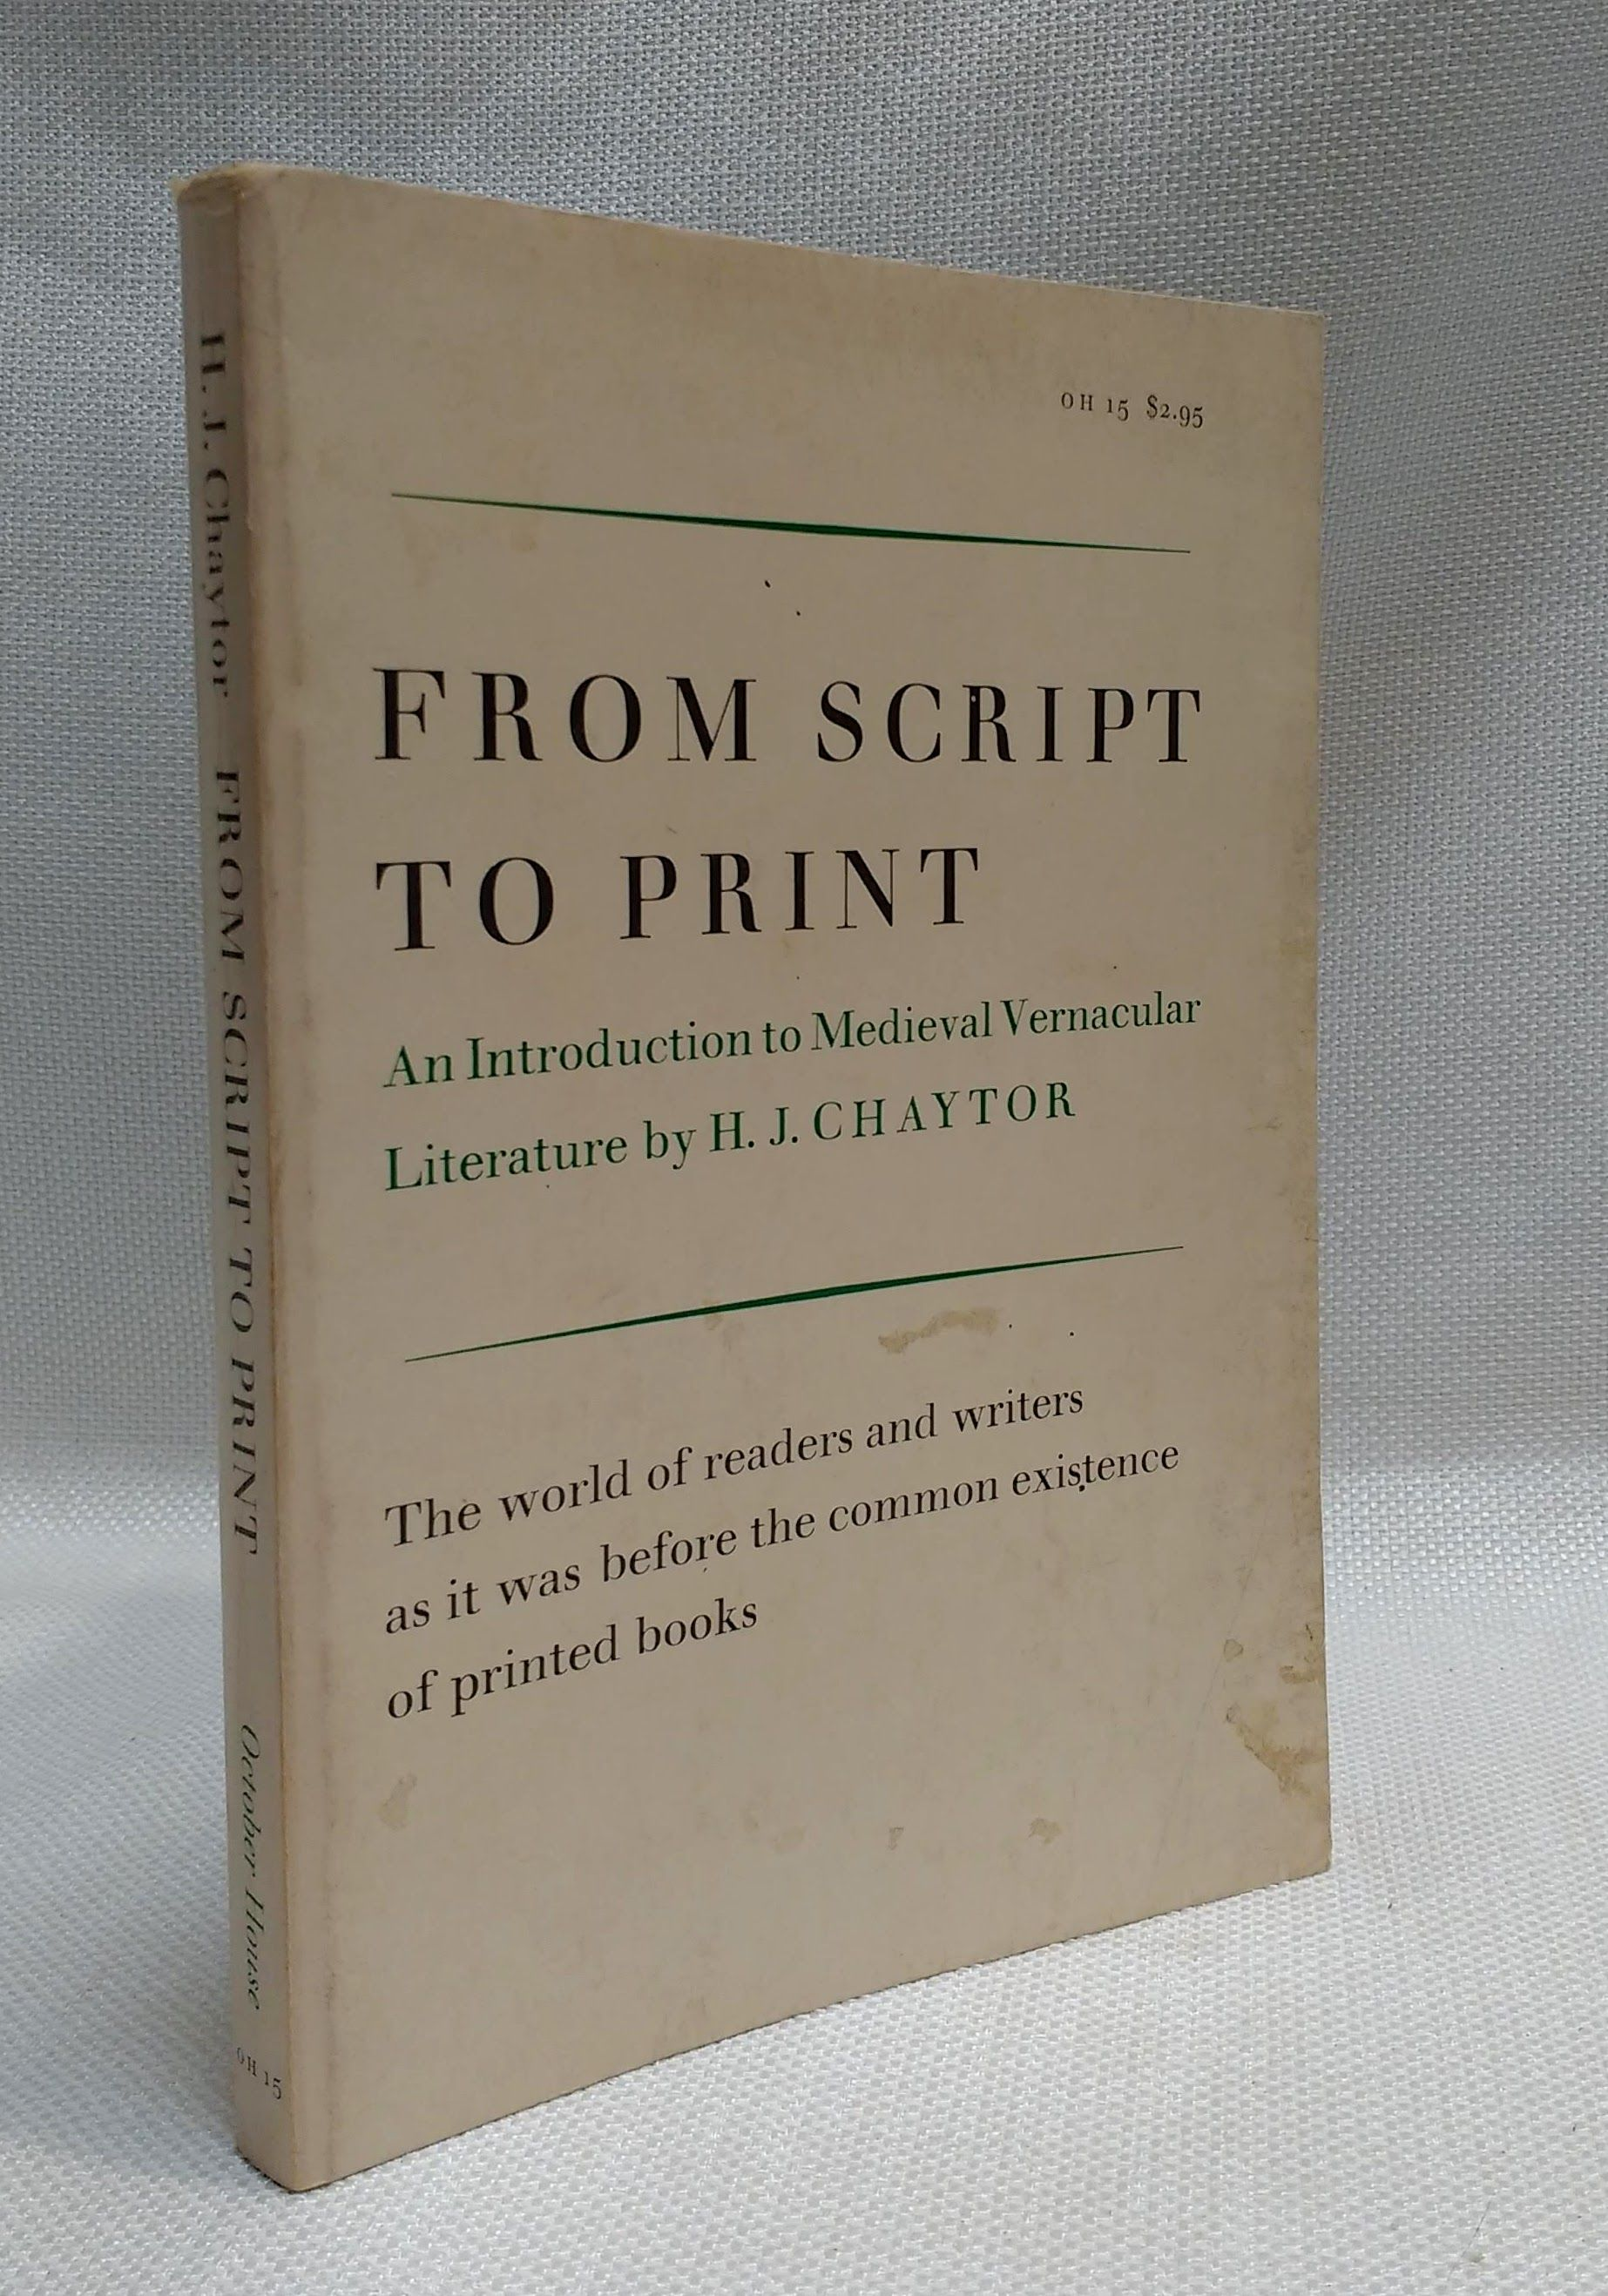 From Script to Print: An Introduction to Medieval Vernacular Literature, Chaytor, H.J.